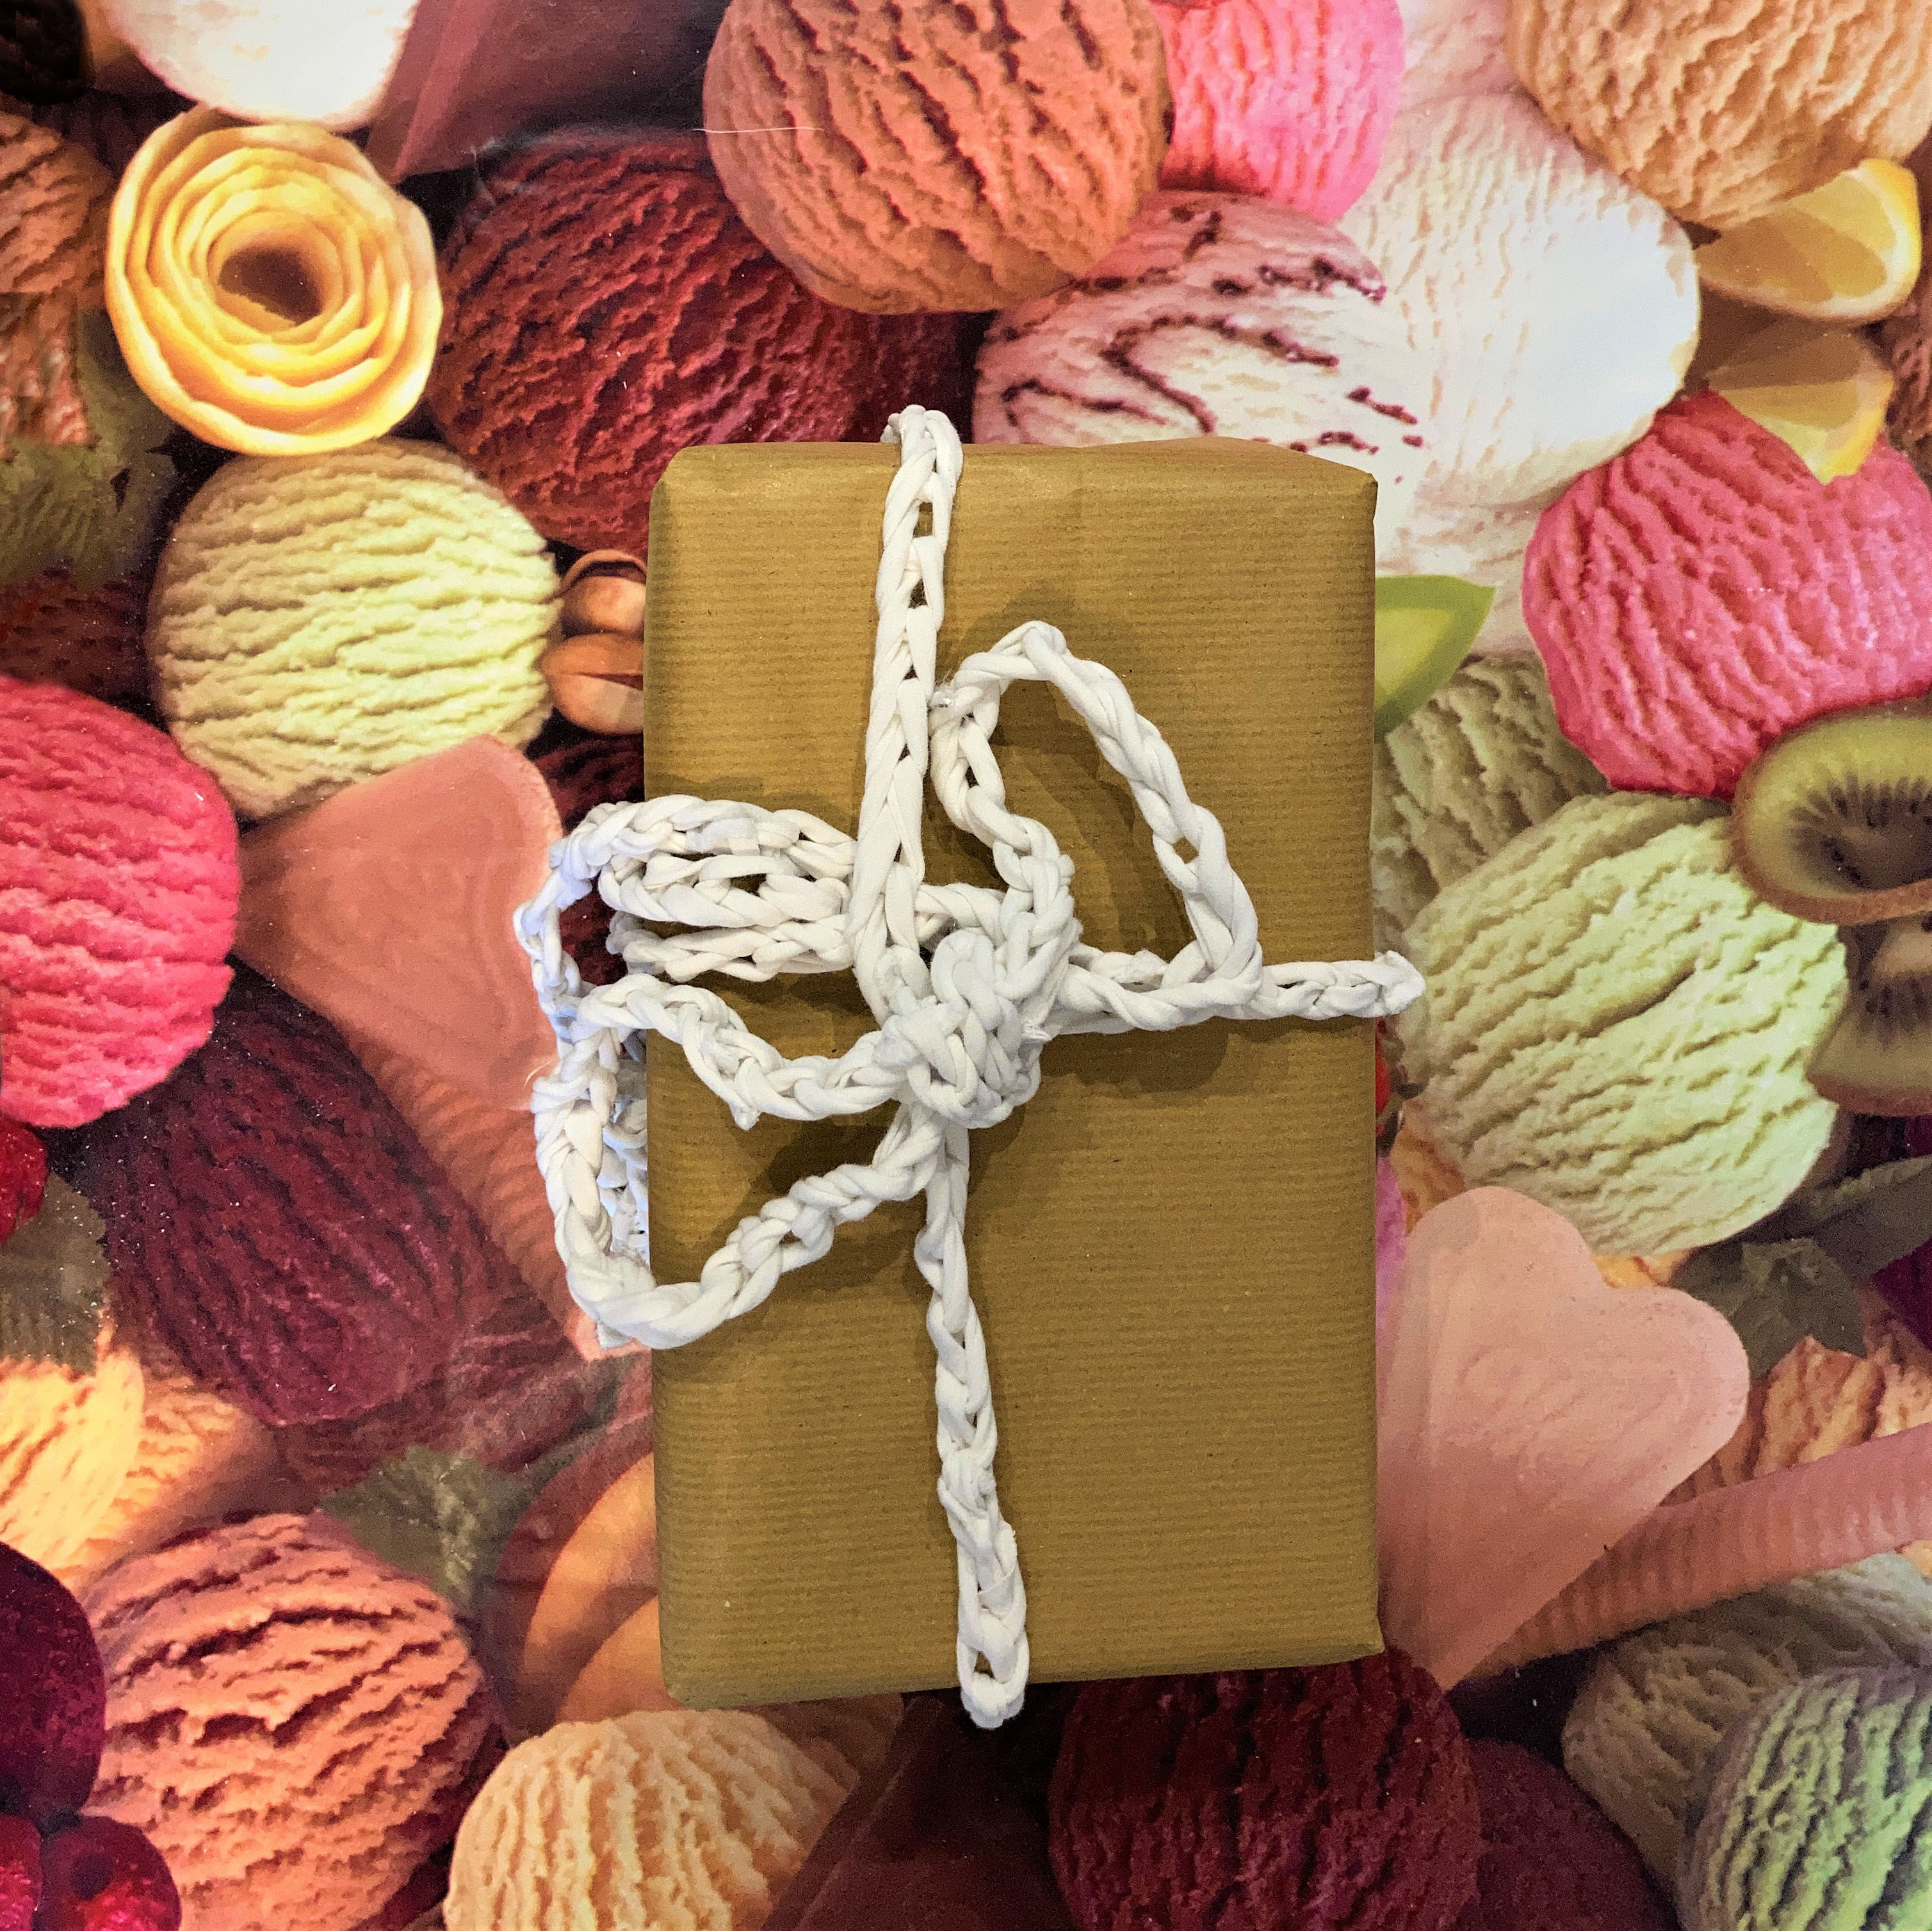 Parcel wrapped with crochet chain